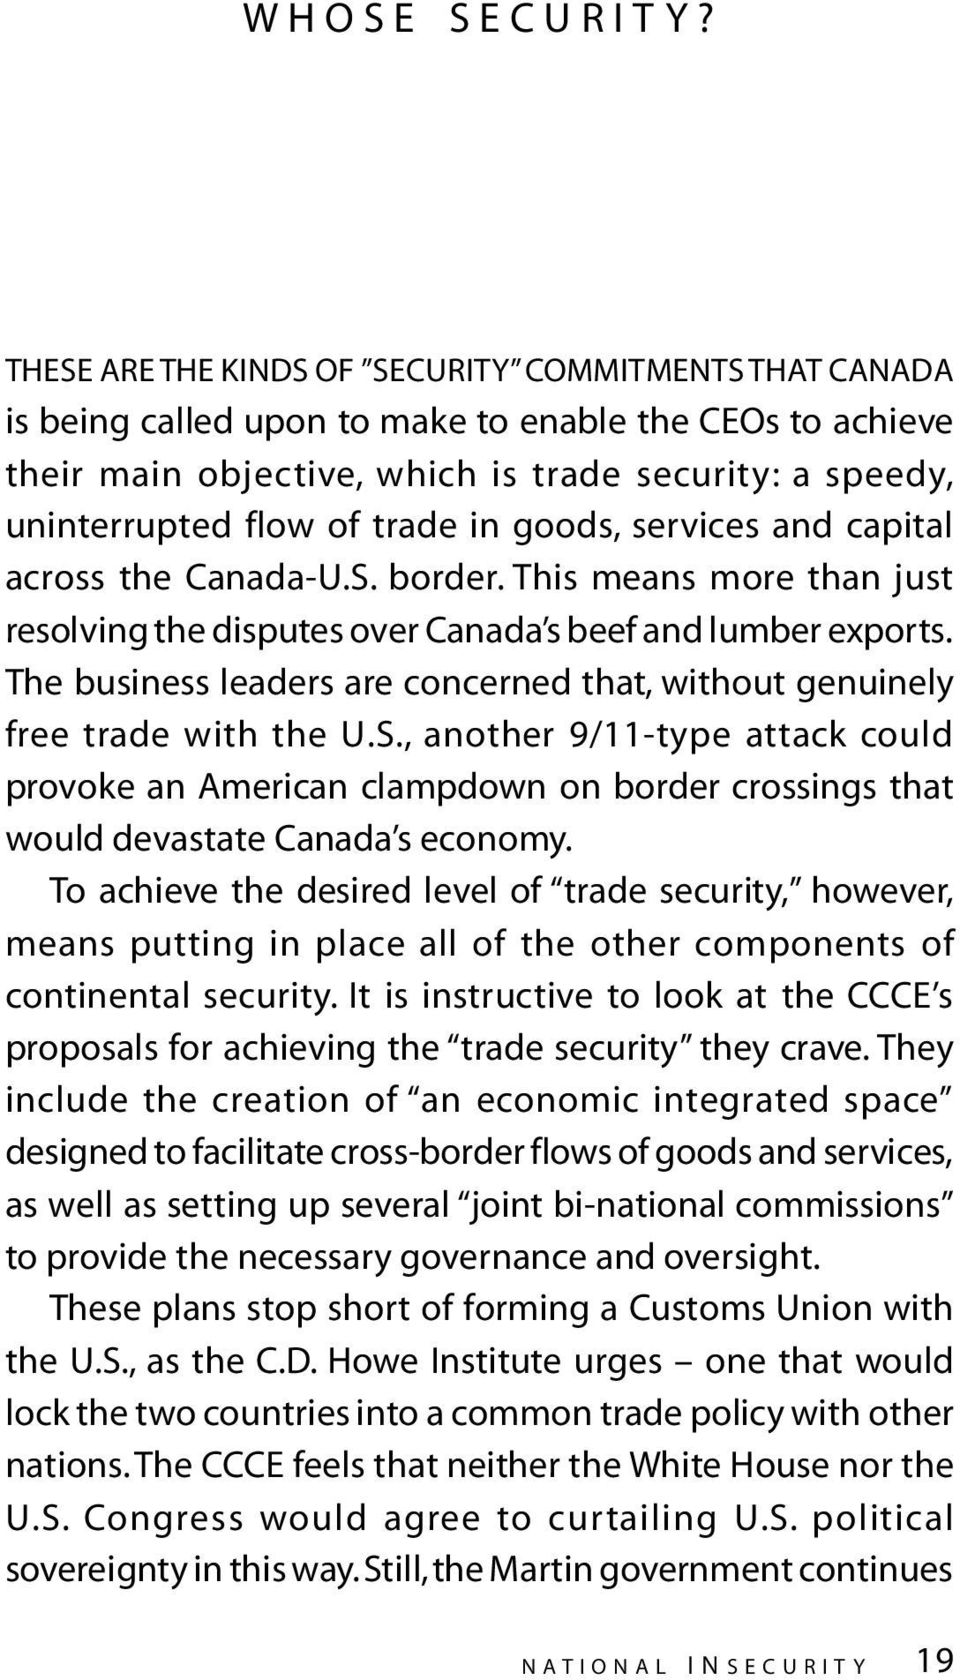 in goods, services and capital across the Canada-U.S. border. This means more than just resolving the disputes over Canada s beef and lumber exports.